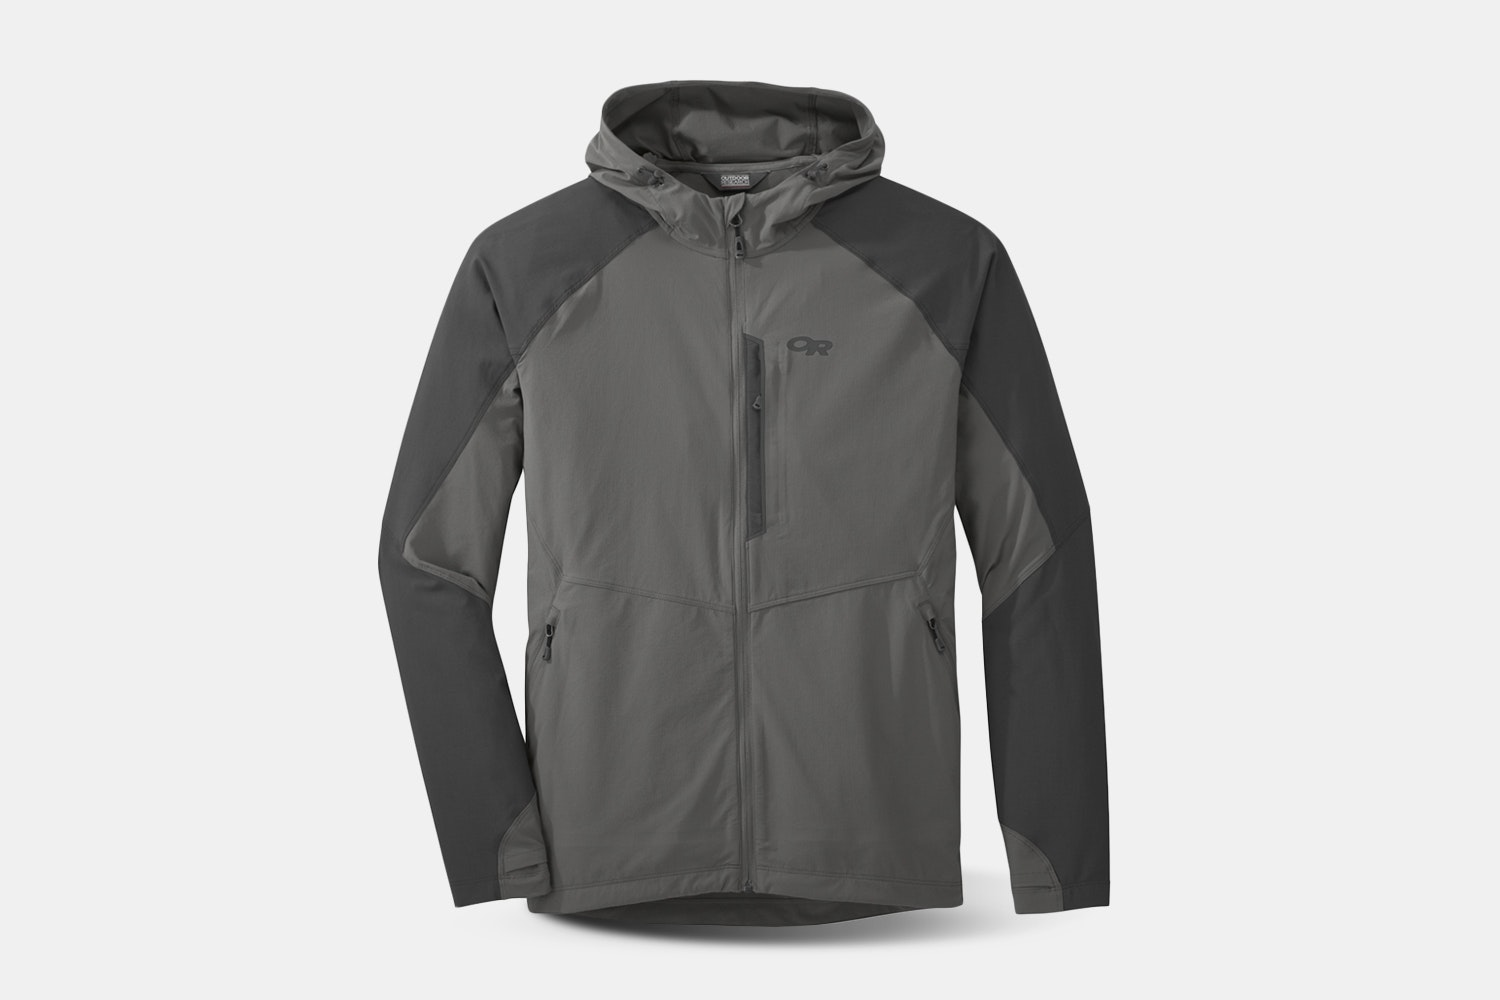 Men's – Pewter/Storm